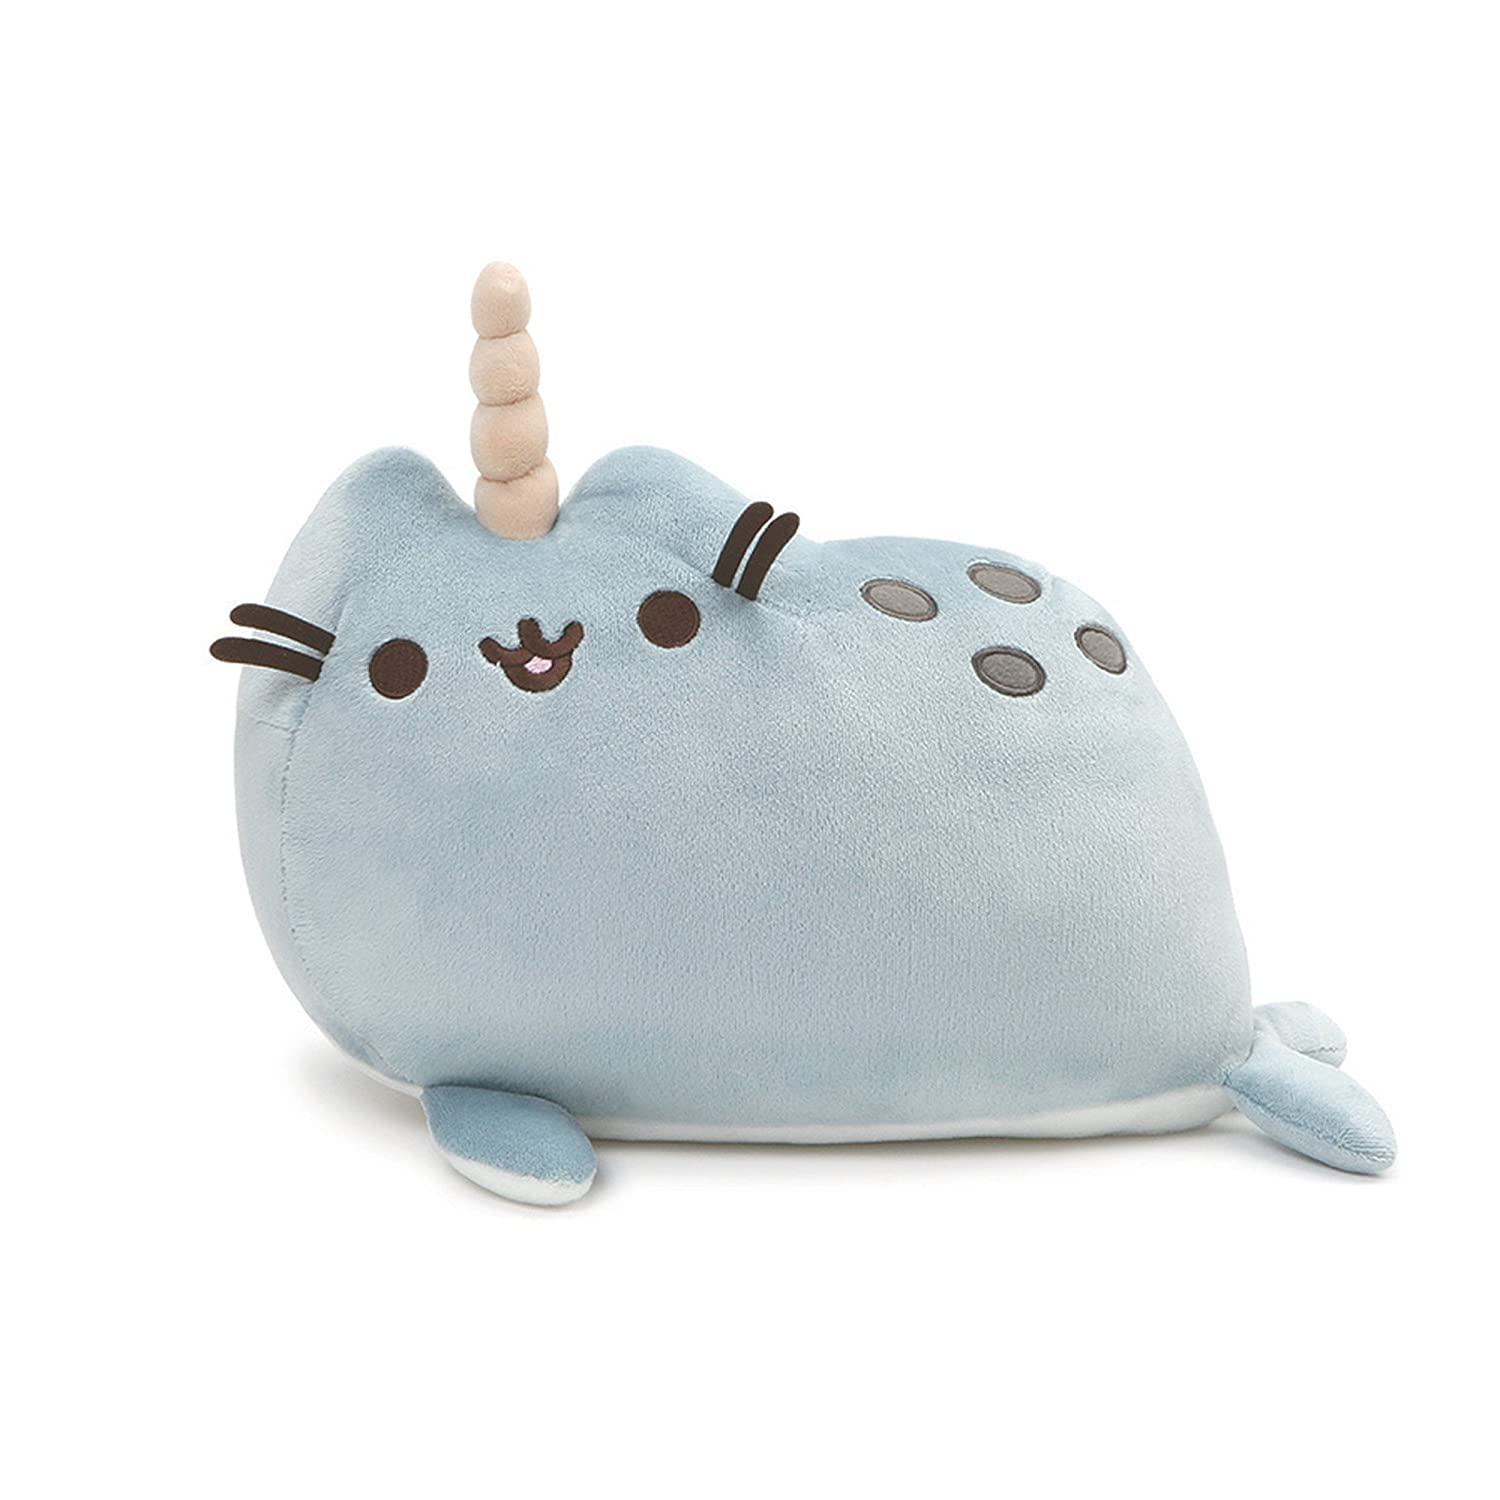 GUND Pusheen Pusheenimal Narwhal Plush Stuffed Animal, Blue, 13""